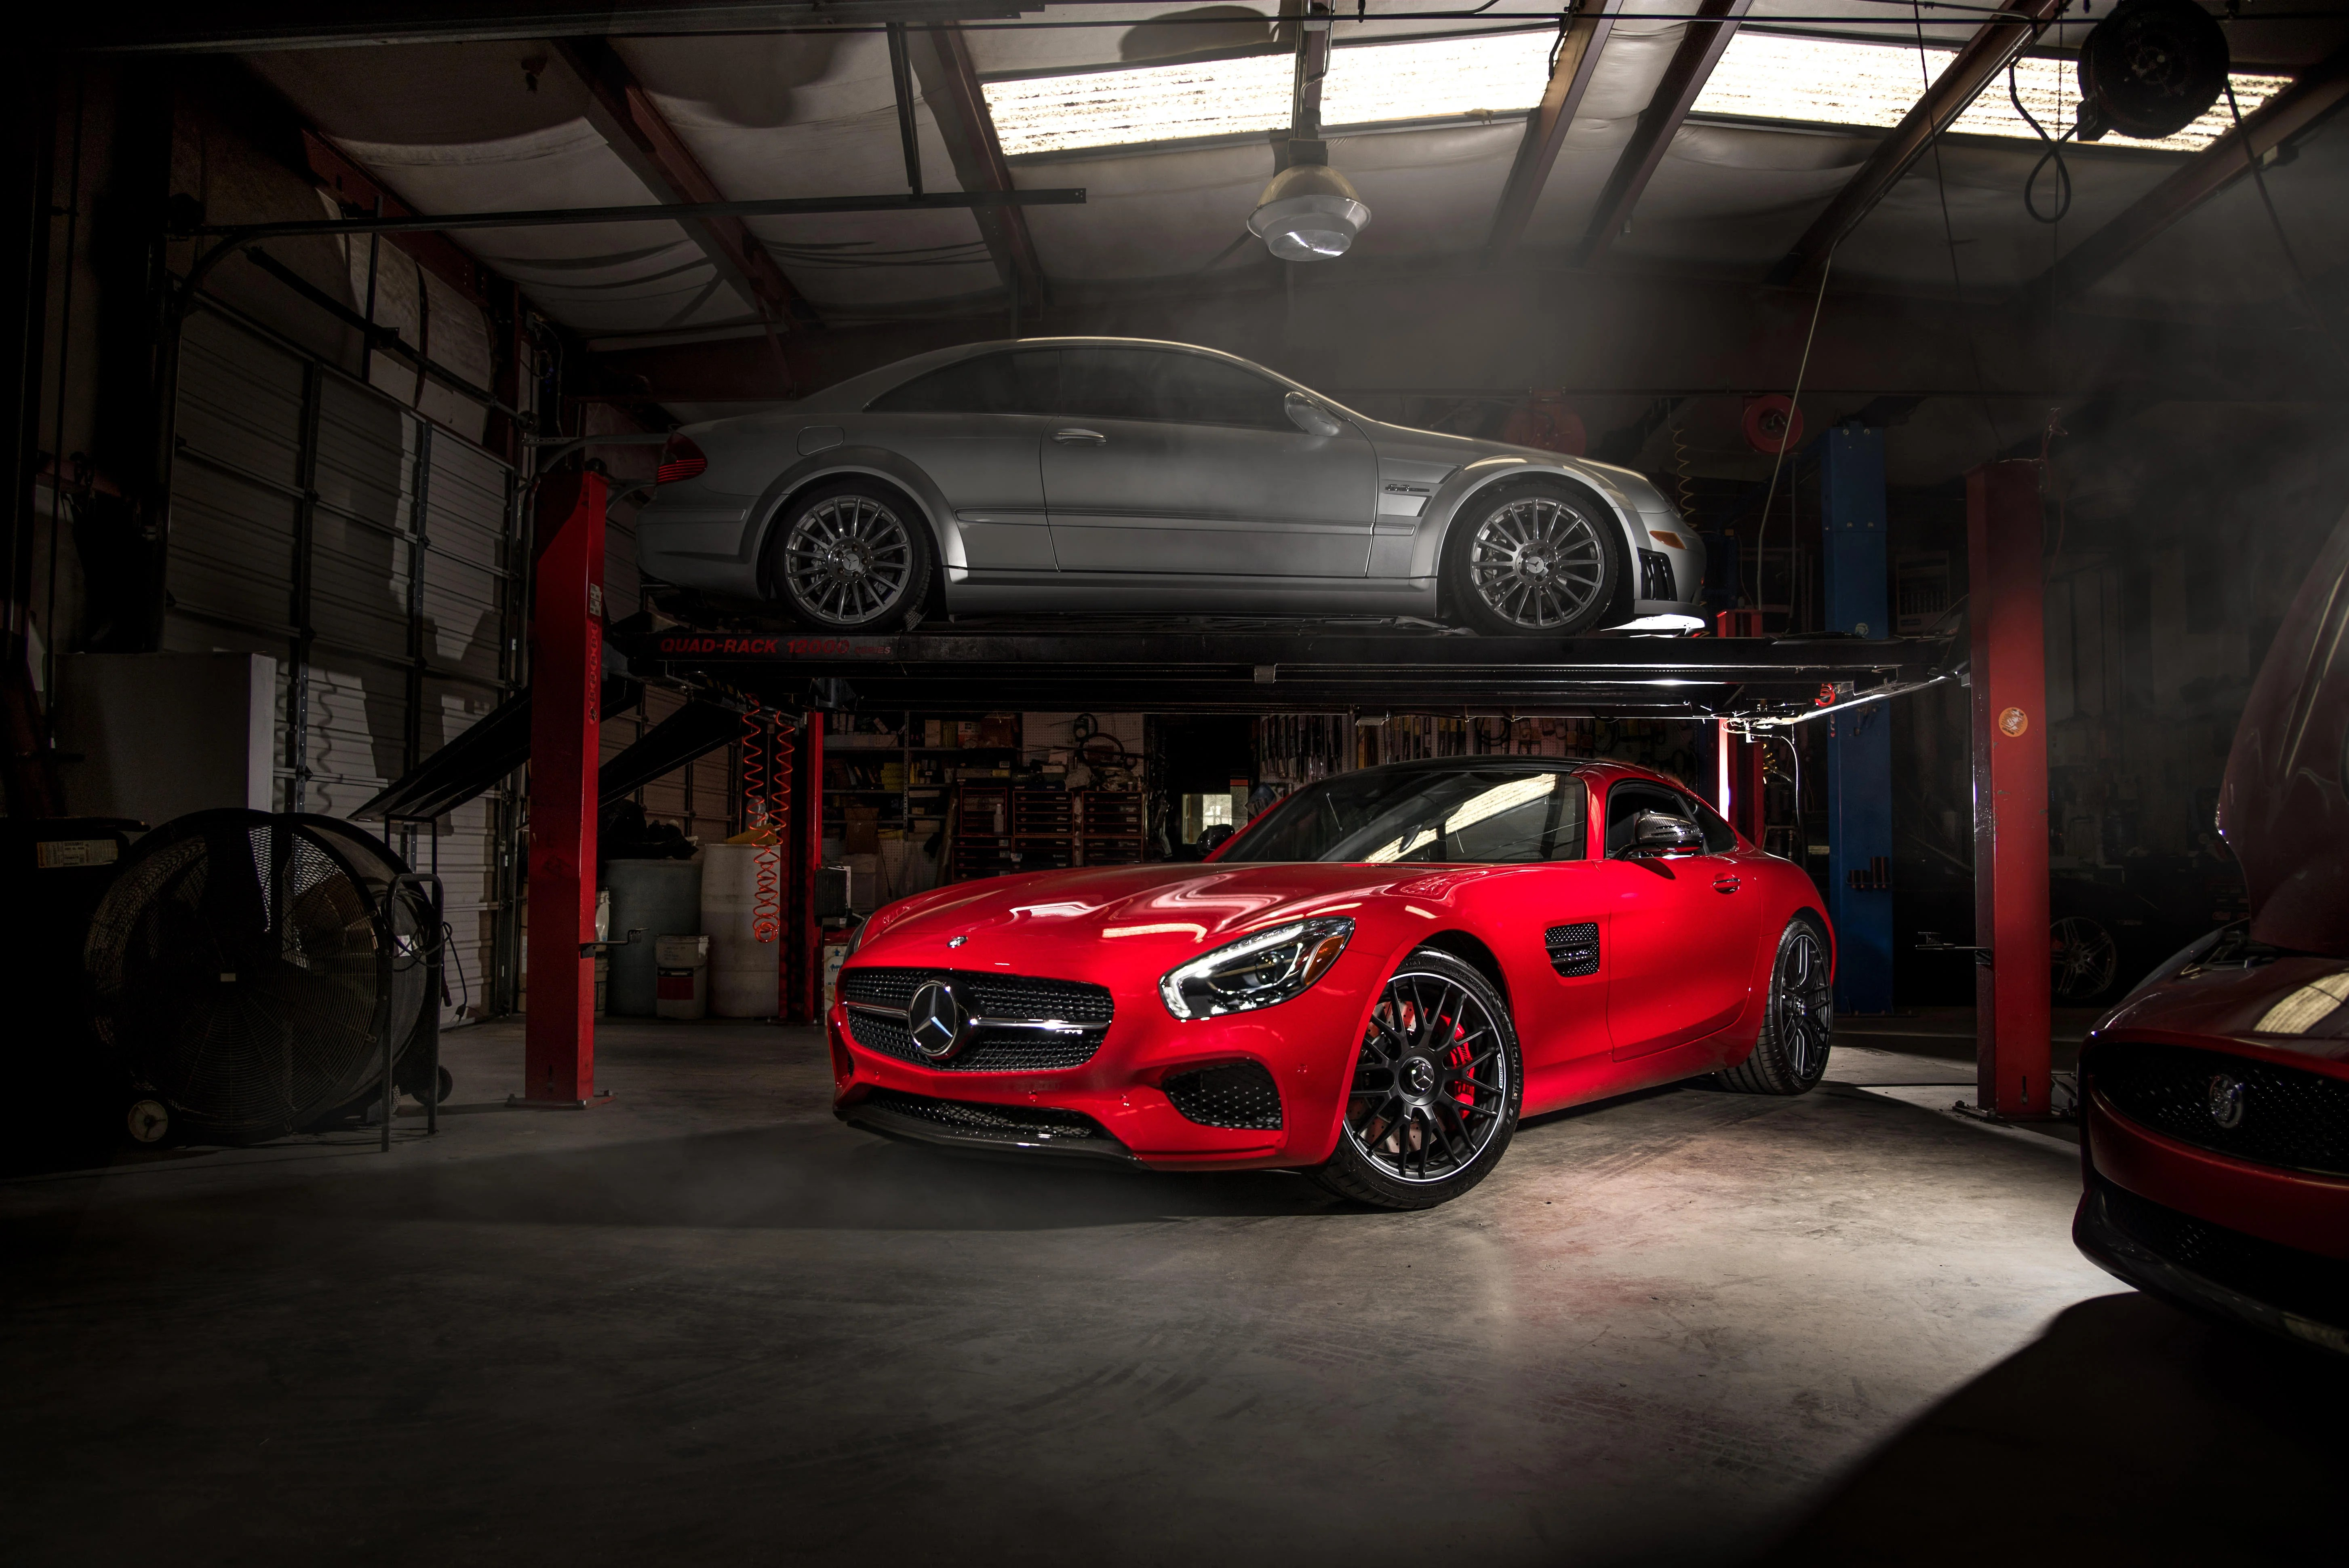 Cool Custom Car Wallpapers Your Ridiculously Awesome Mercedes Amg Gt Wallpapers Are Here